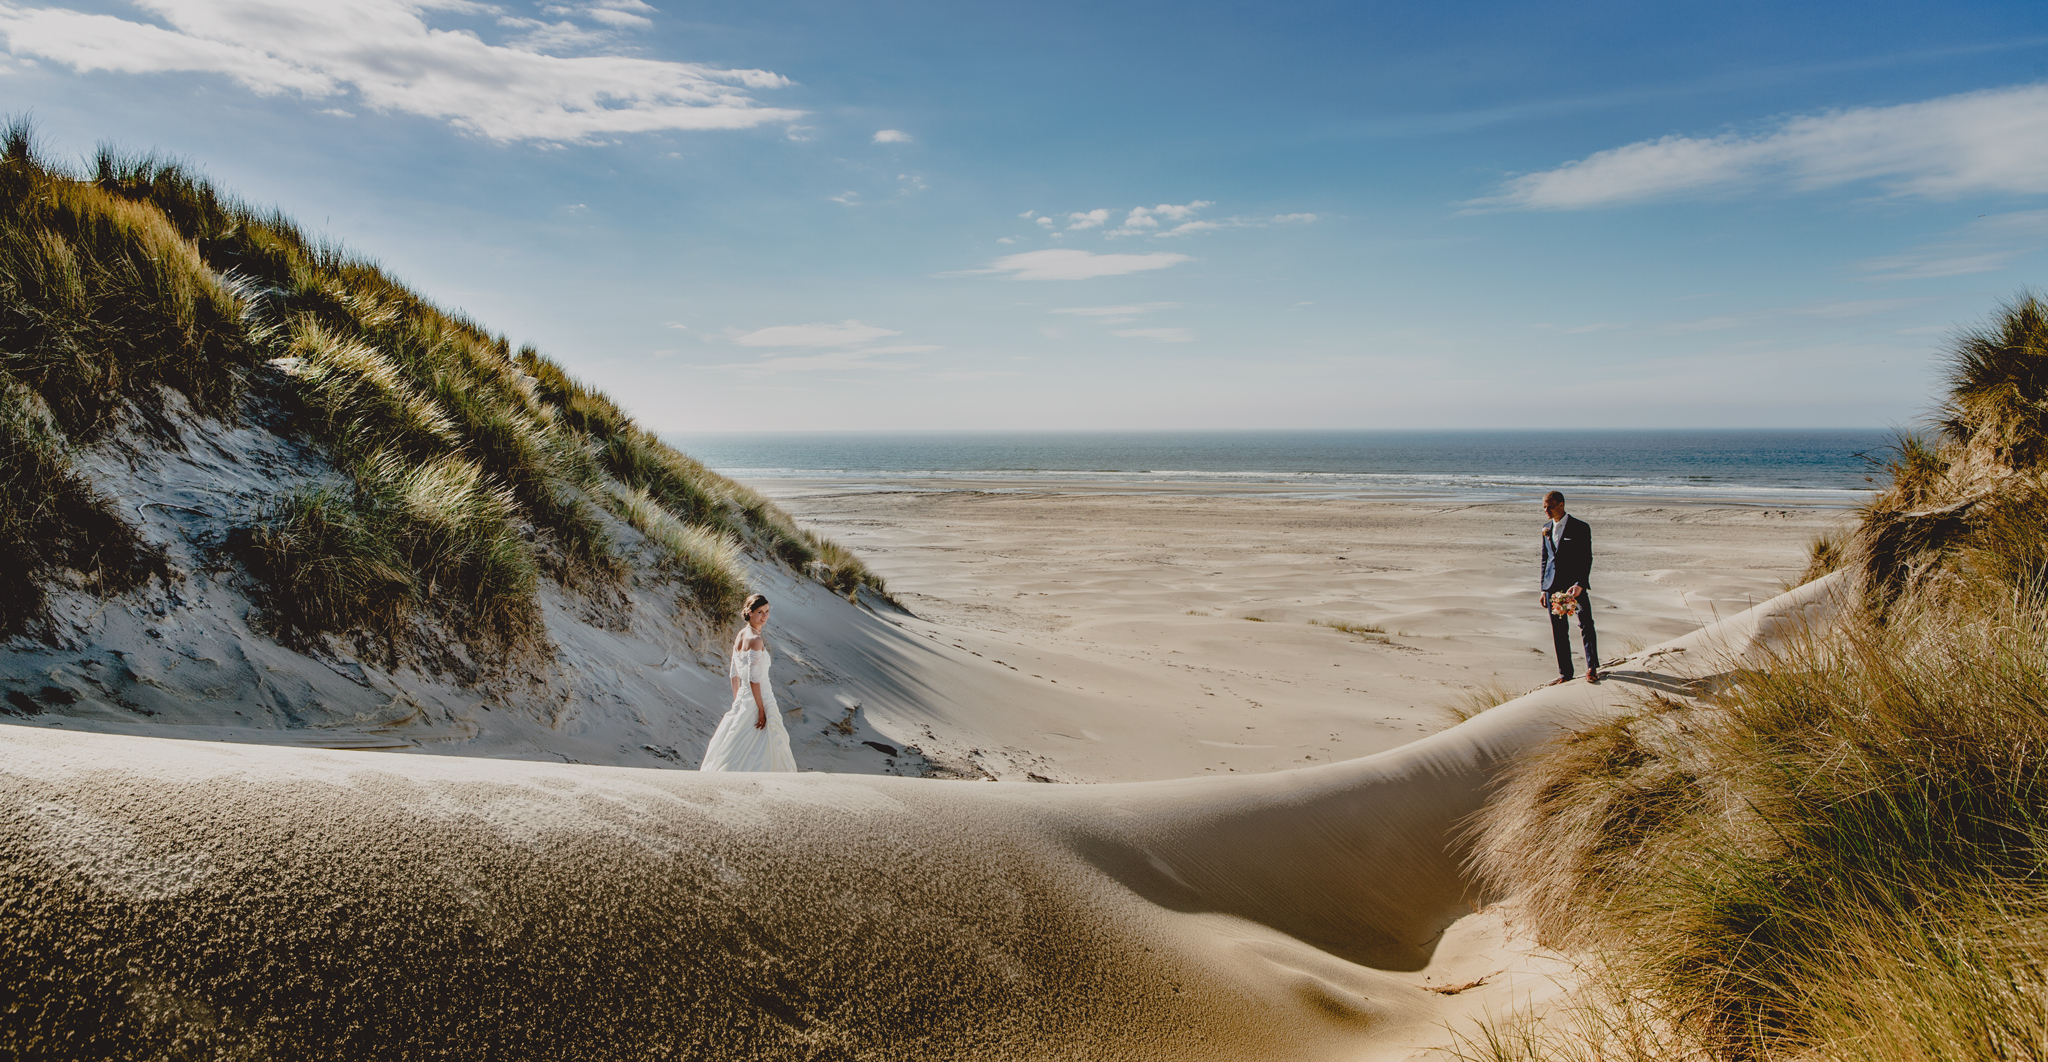 Bas-Driessen-Photohgraphy-Wouter-Catootje-1